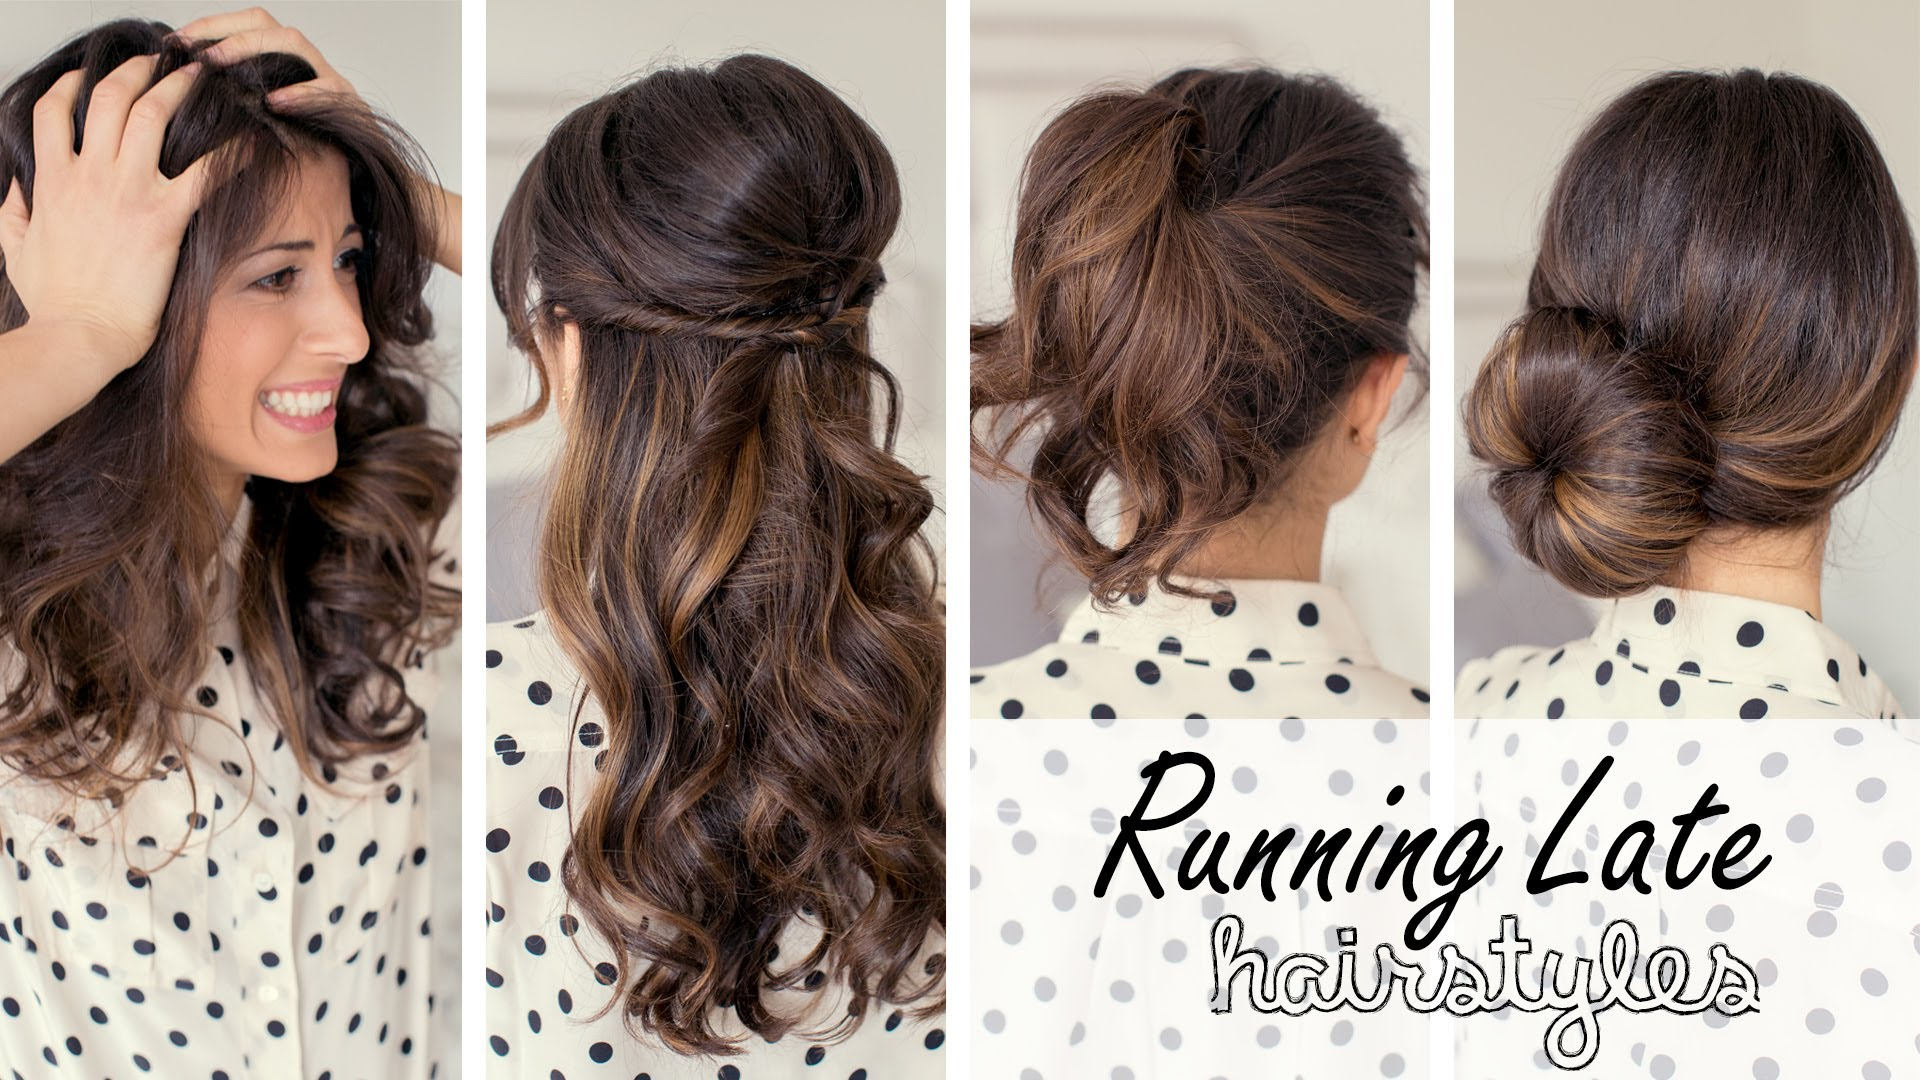 25 Best Hair Style Trends For 2015  The WoW Style